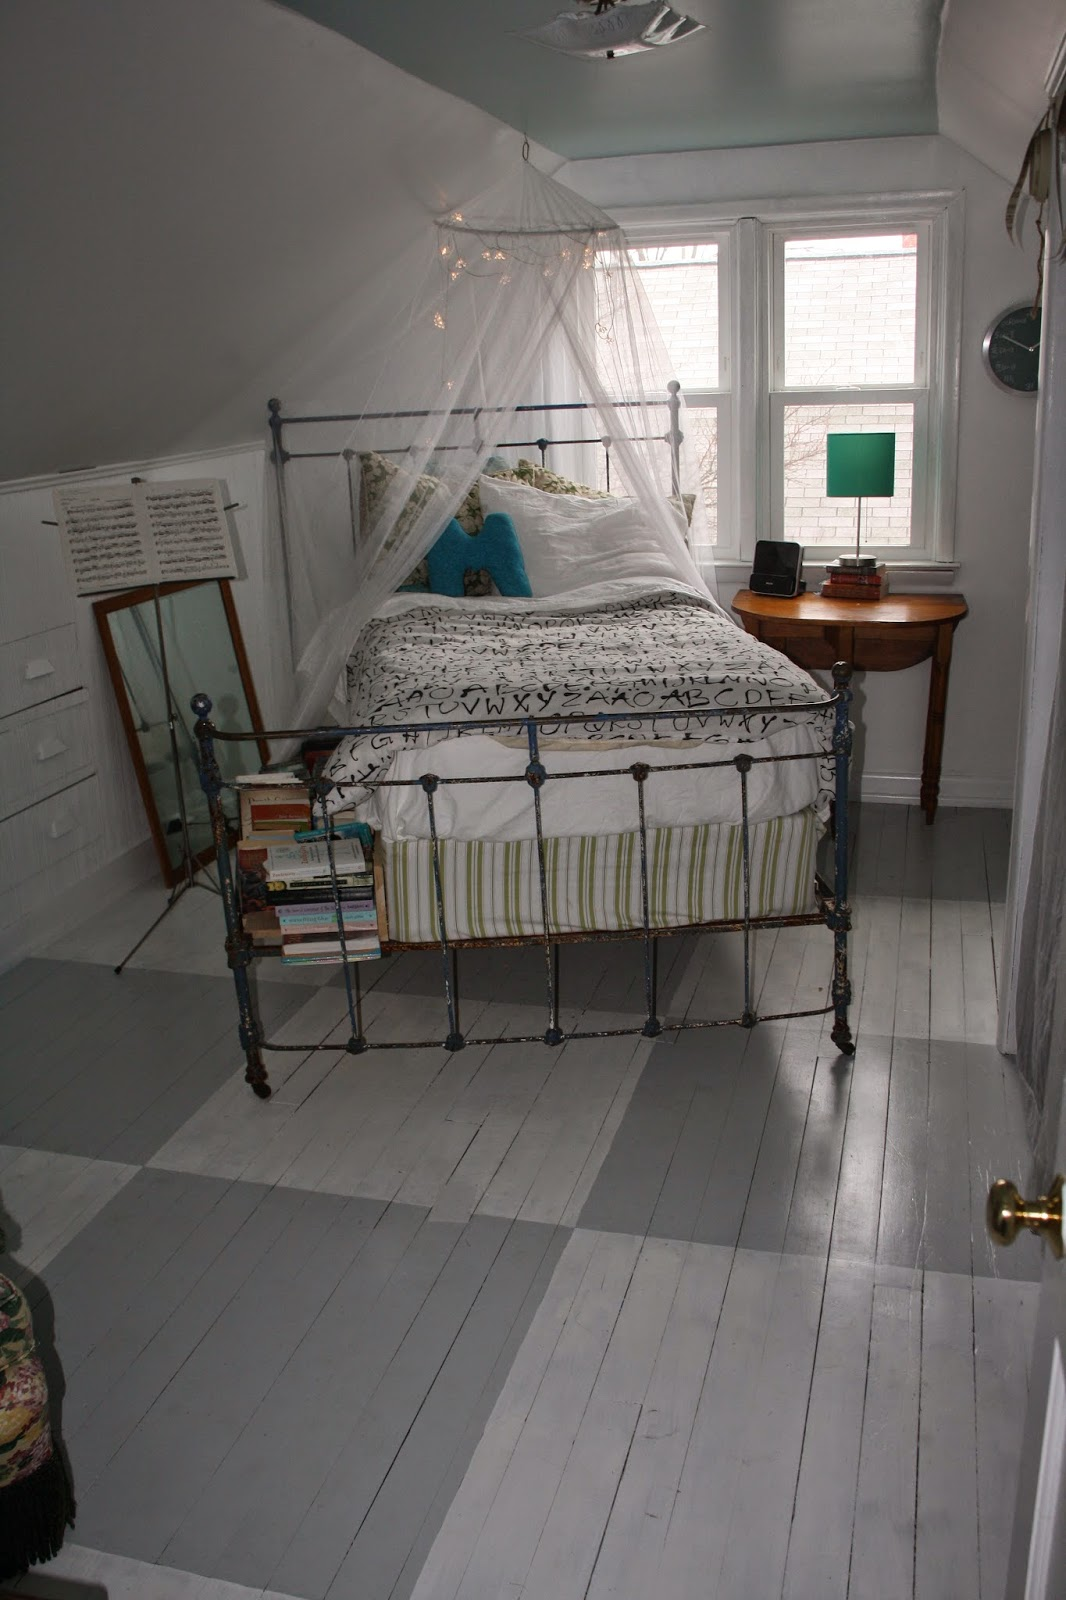 7 Bedroom House For Rent: CowfeathersFarm: Before And After- Salem House Bedroom